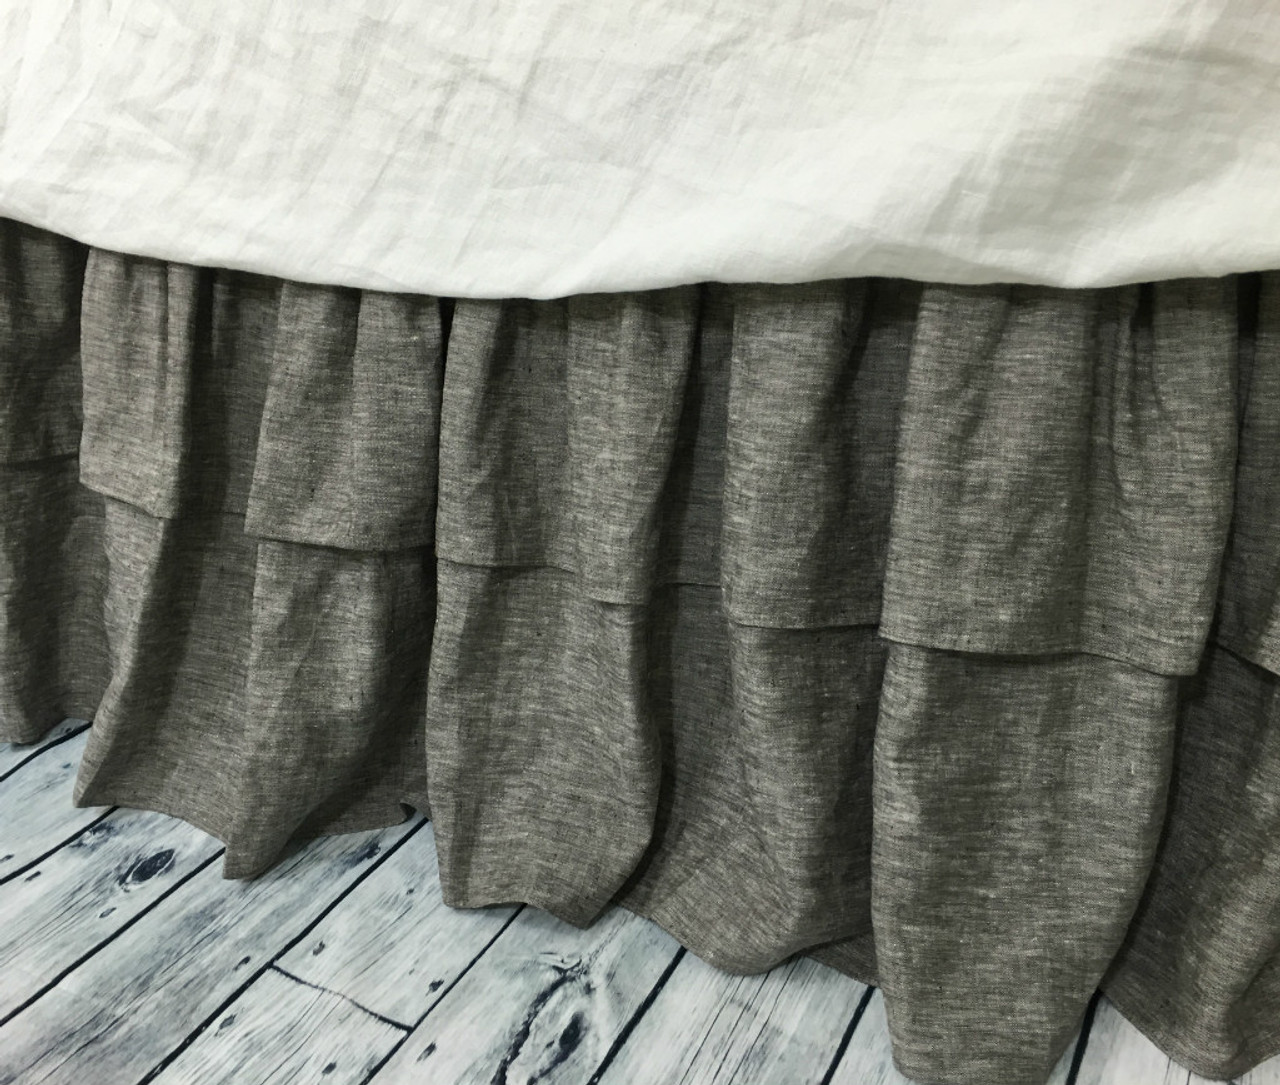 Chambray Grey Bed Skirt With Double Layer Ruffles Available In Twin Full Queen King Calif King 13 24 Drop Or Custom Length